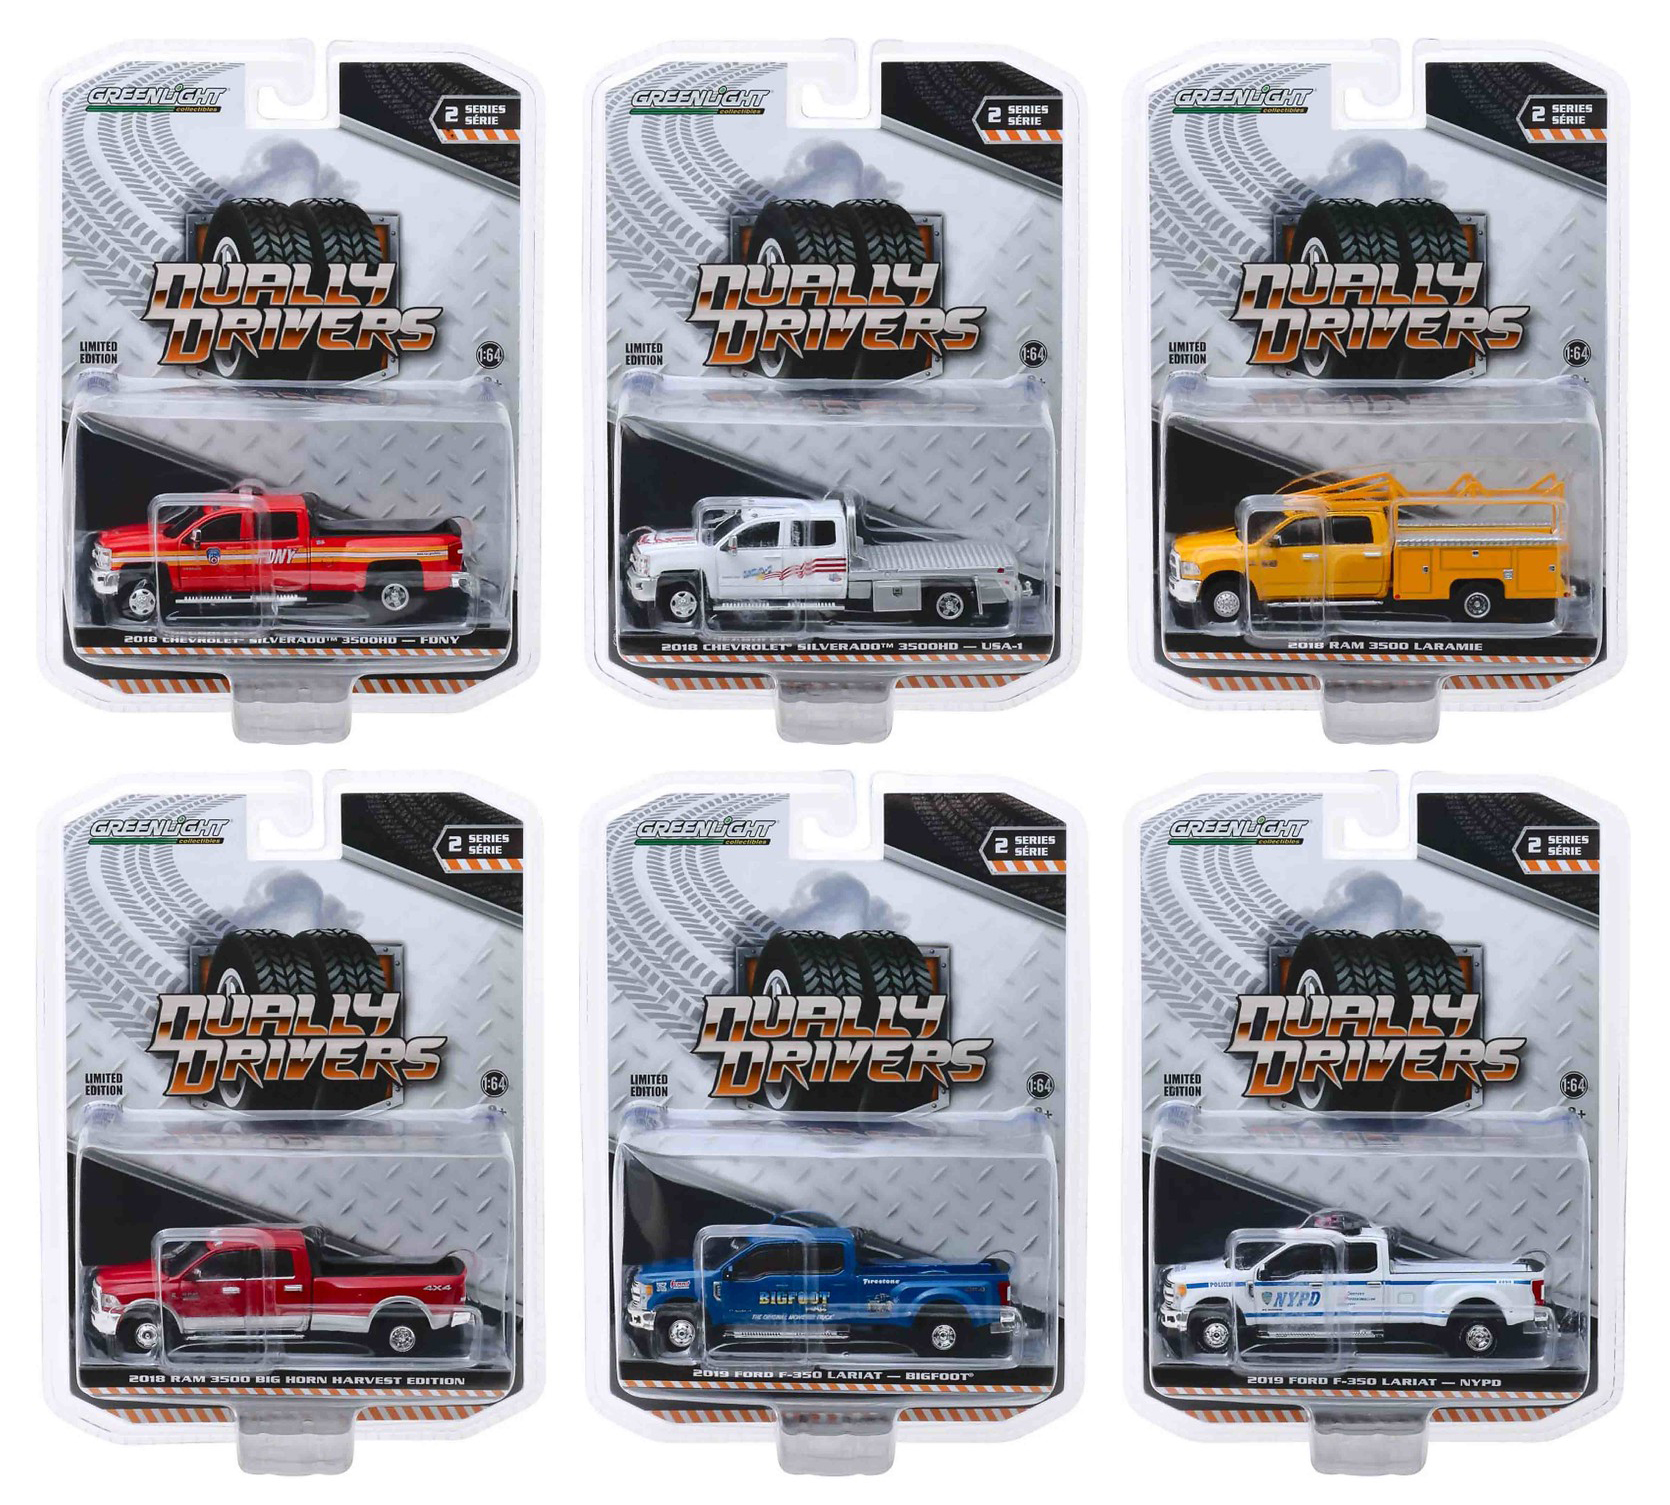 Dually Drivers Series 2 Set of 6 Trucks 1/64 Diecast Model Cars by Greenlight